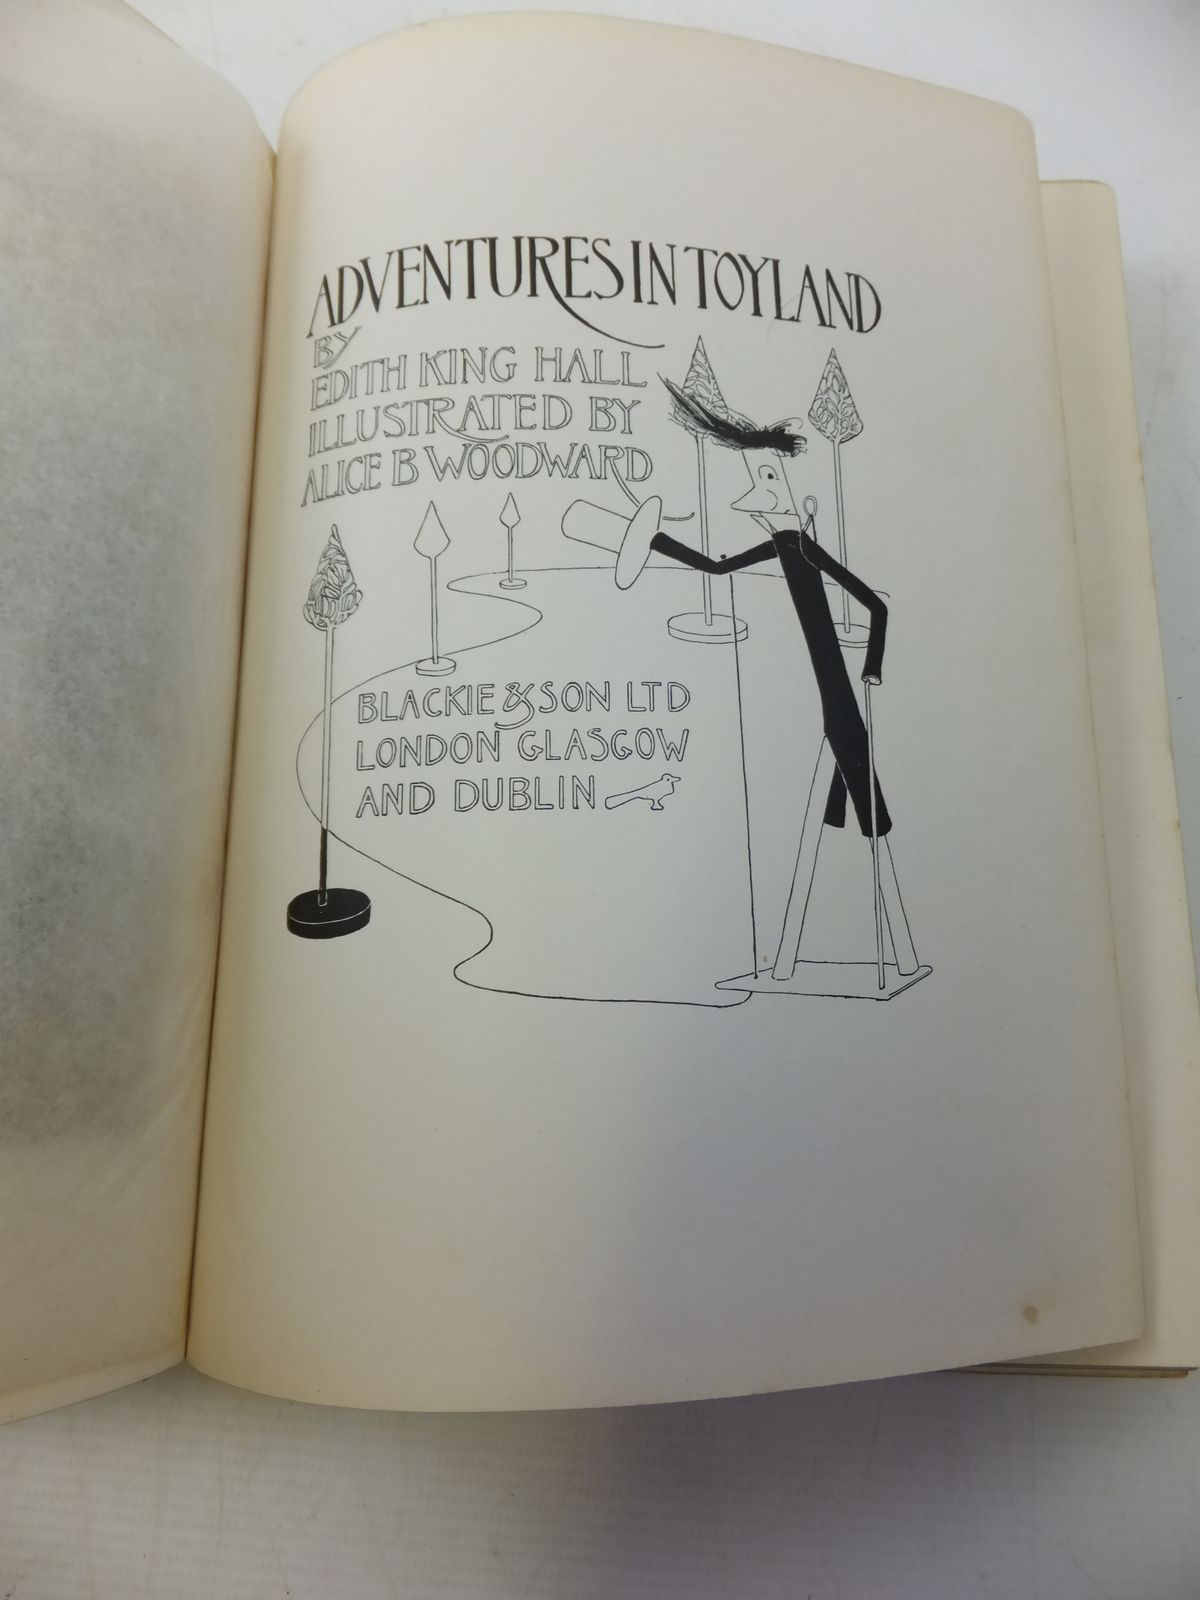 Photo of ADVENTURES IN TOYLAND written by Hall, Edith King illustrated by Woodward, Alice B. published by Blackie & Son Ltd. (STOCK CODE: 1109459)  for sale by Stella & Rose's Books